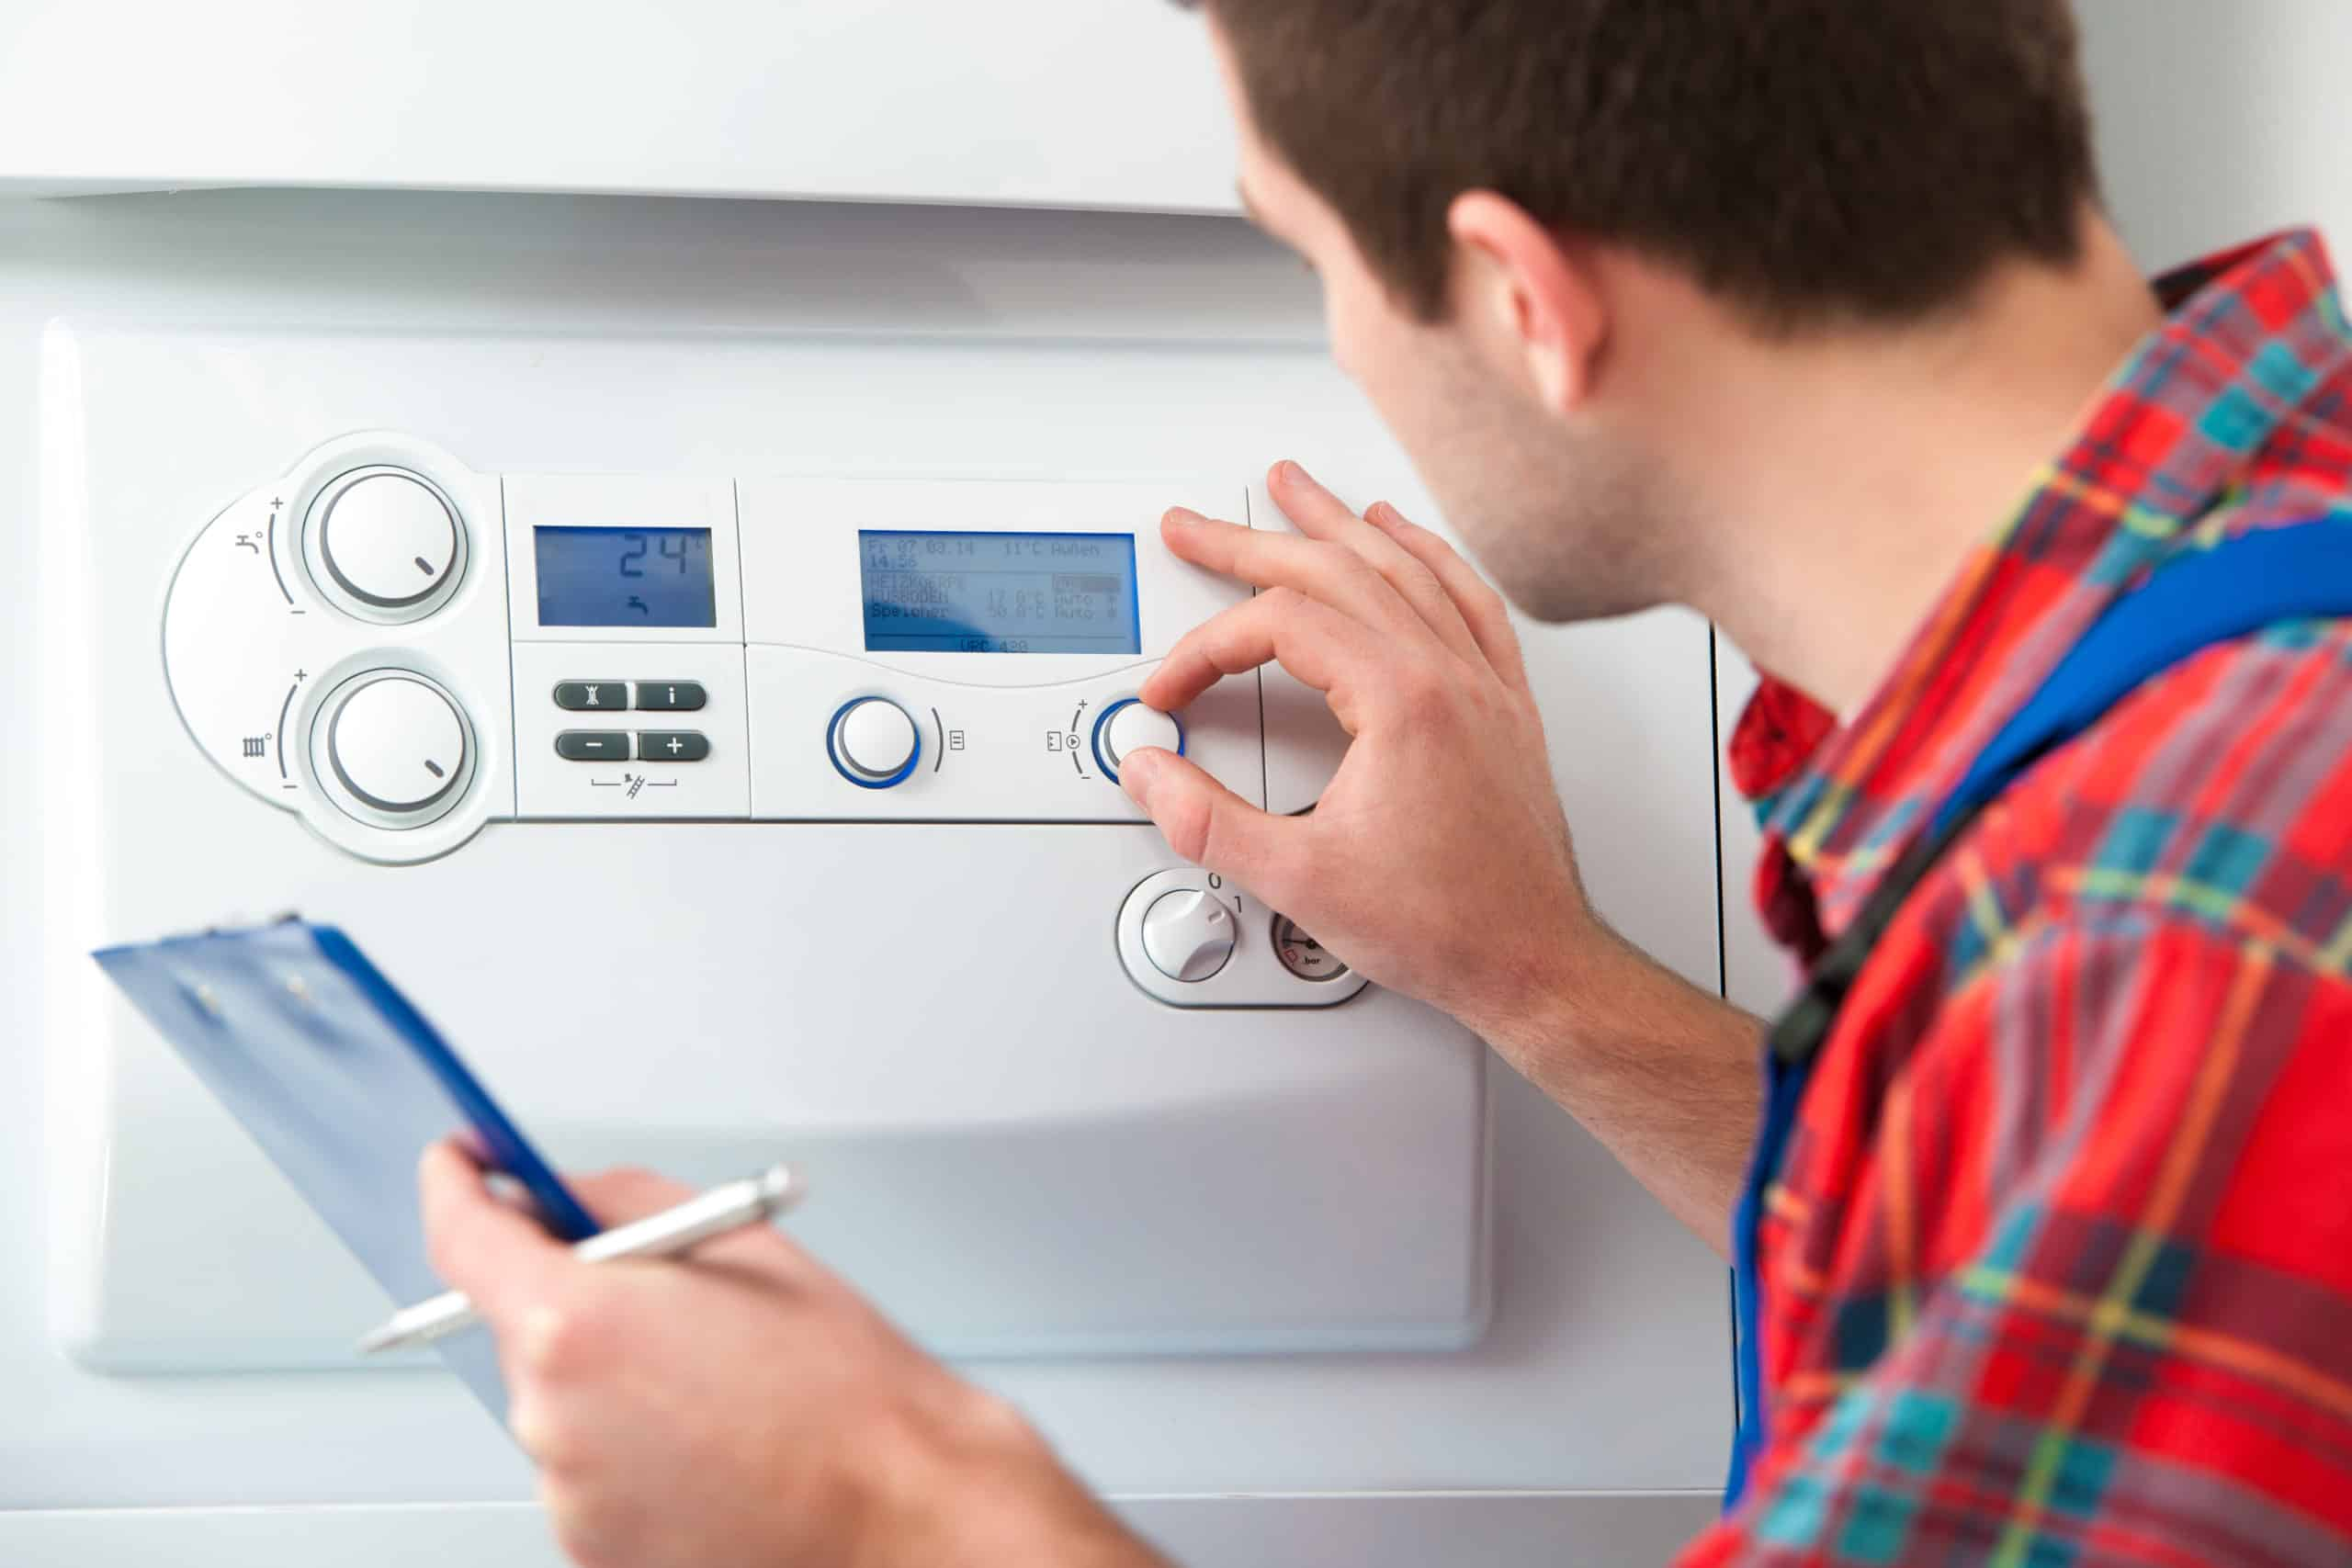 We Service and Repair Boilers, Furnaces, and More